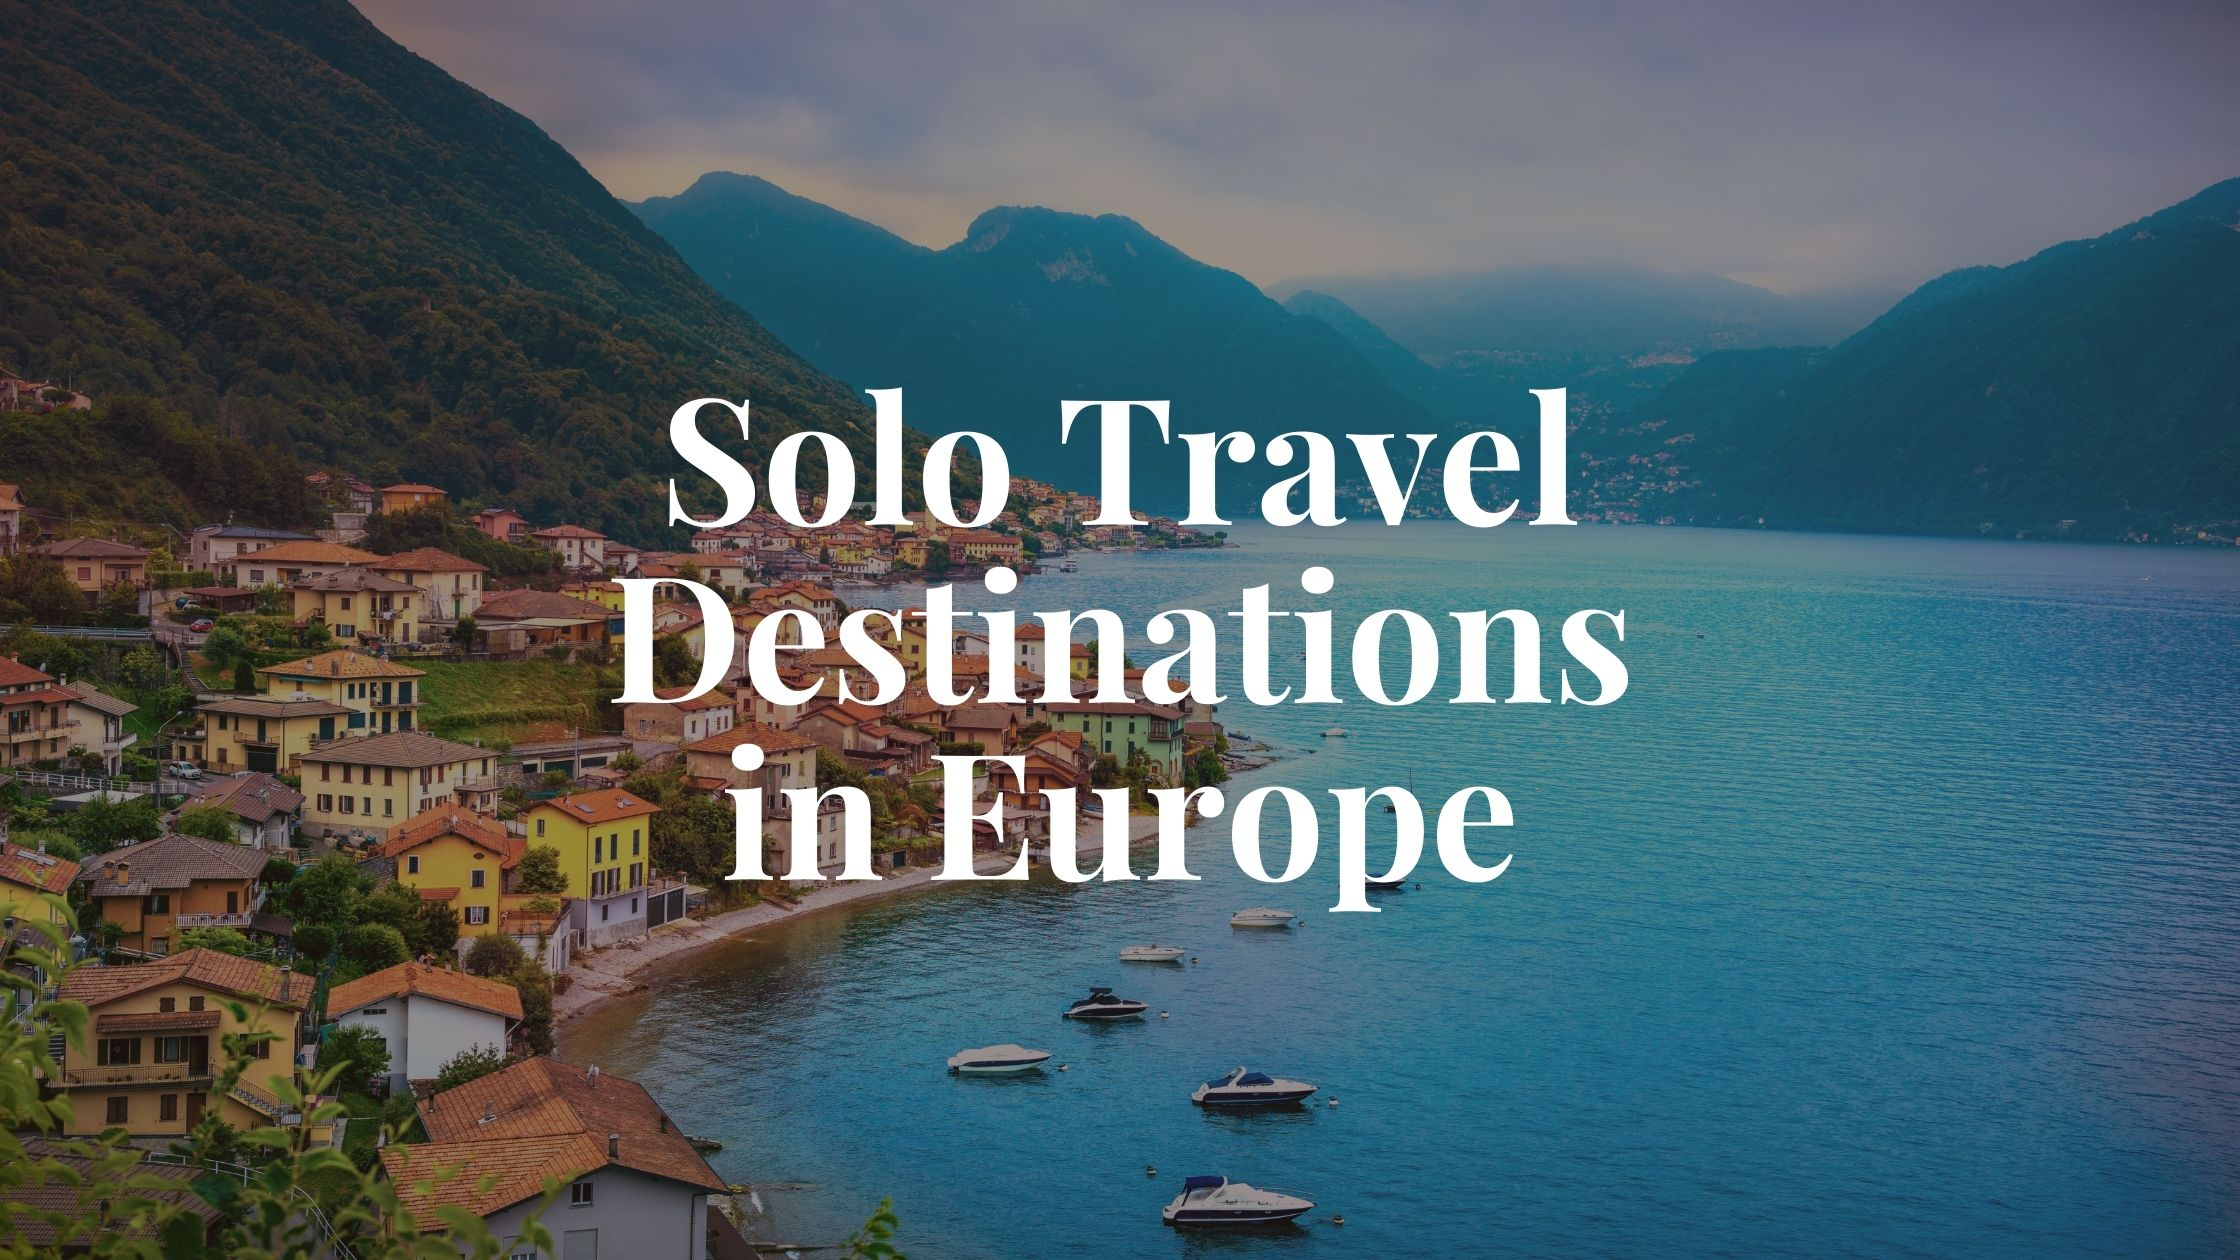 Solo Travel Destinations in Europe